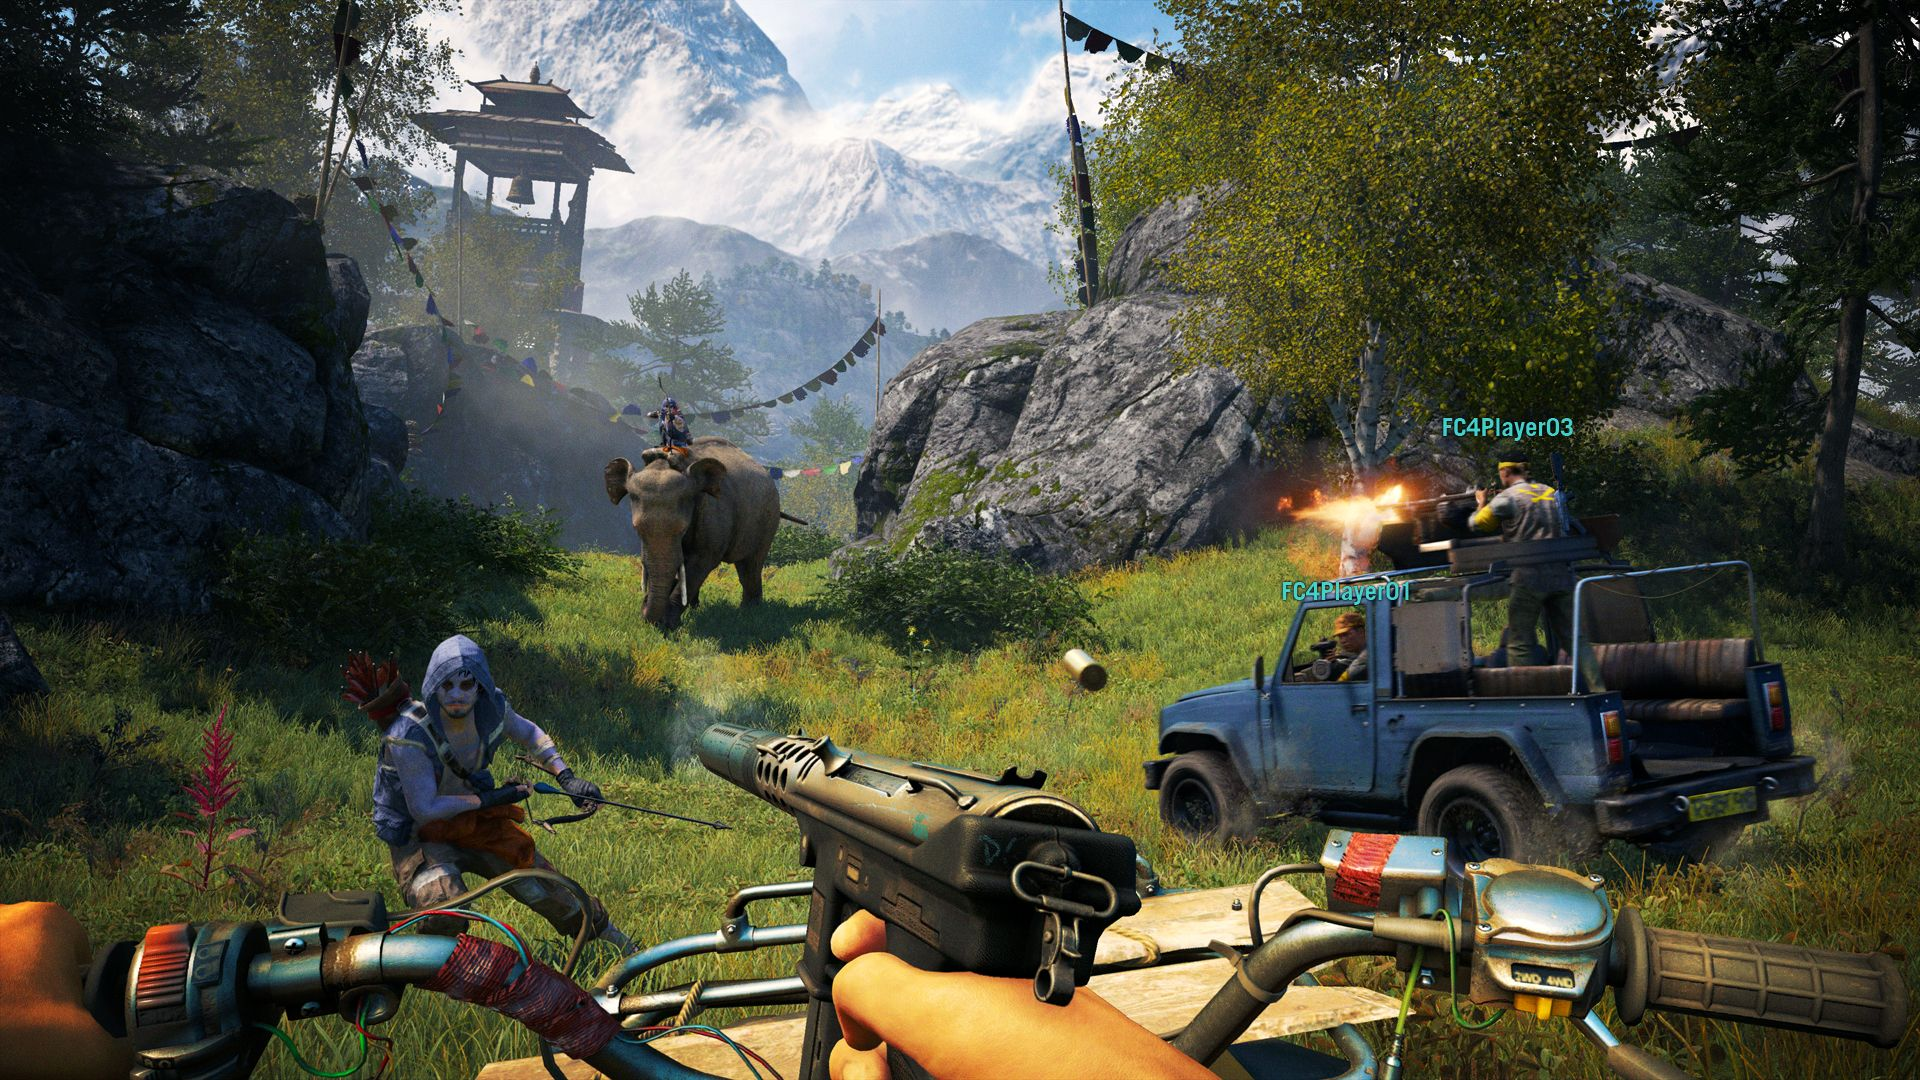 Far Cry 4 Pc Game Free Download Far Cry 4 Hero Unit First